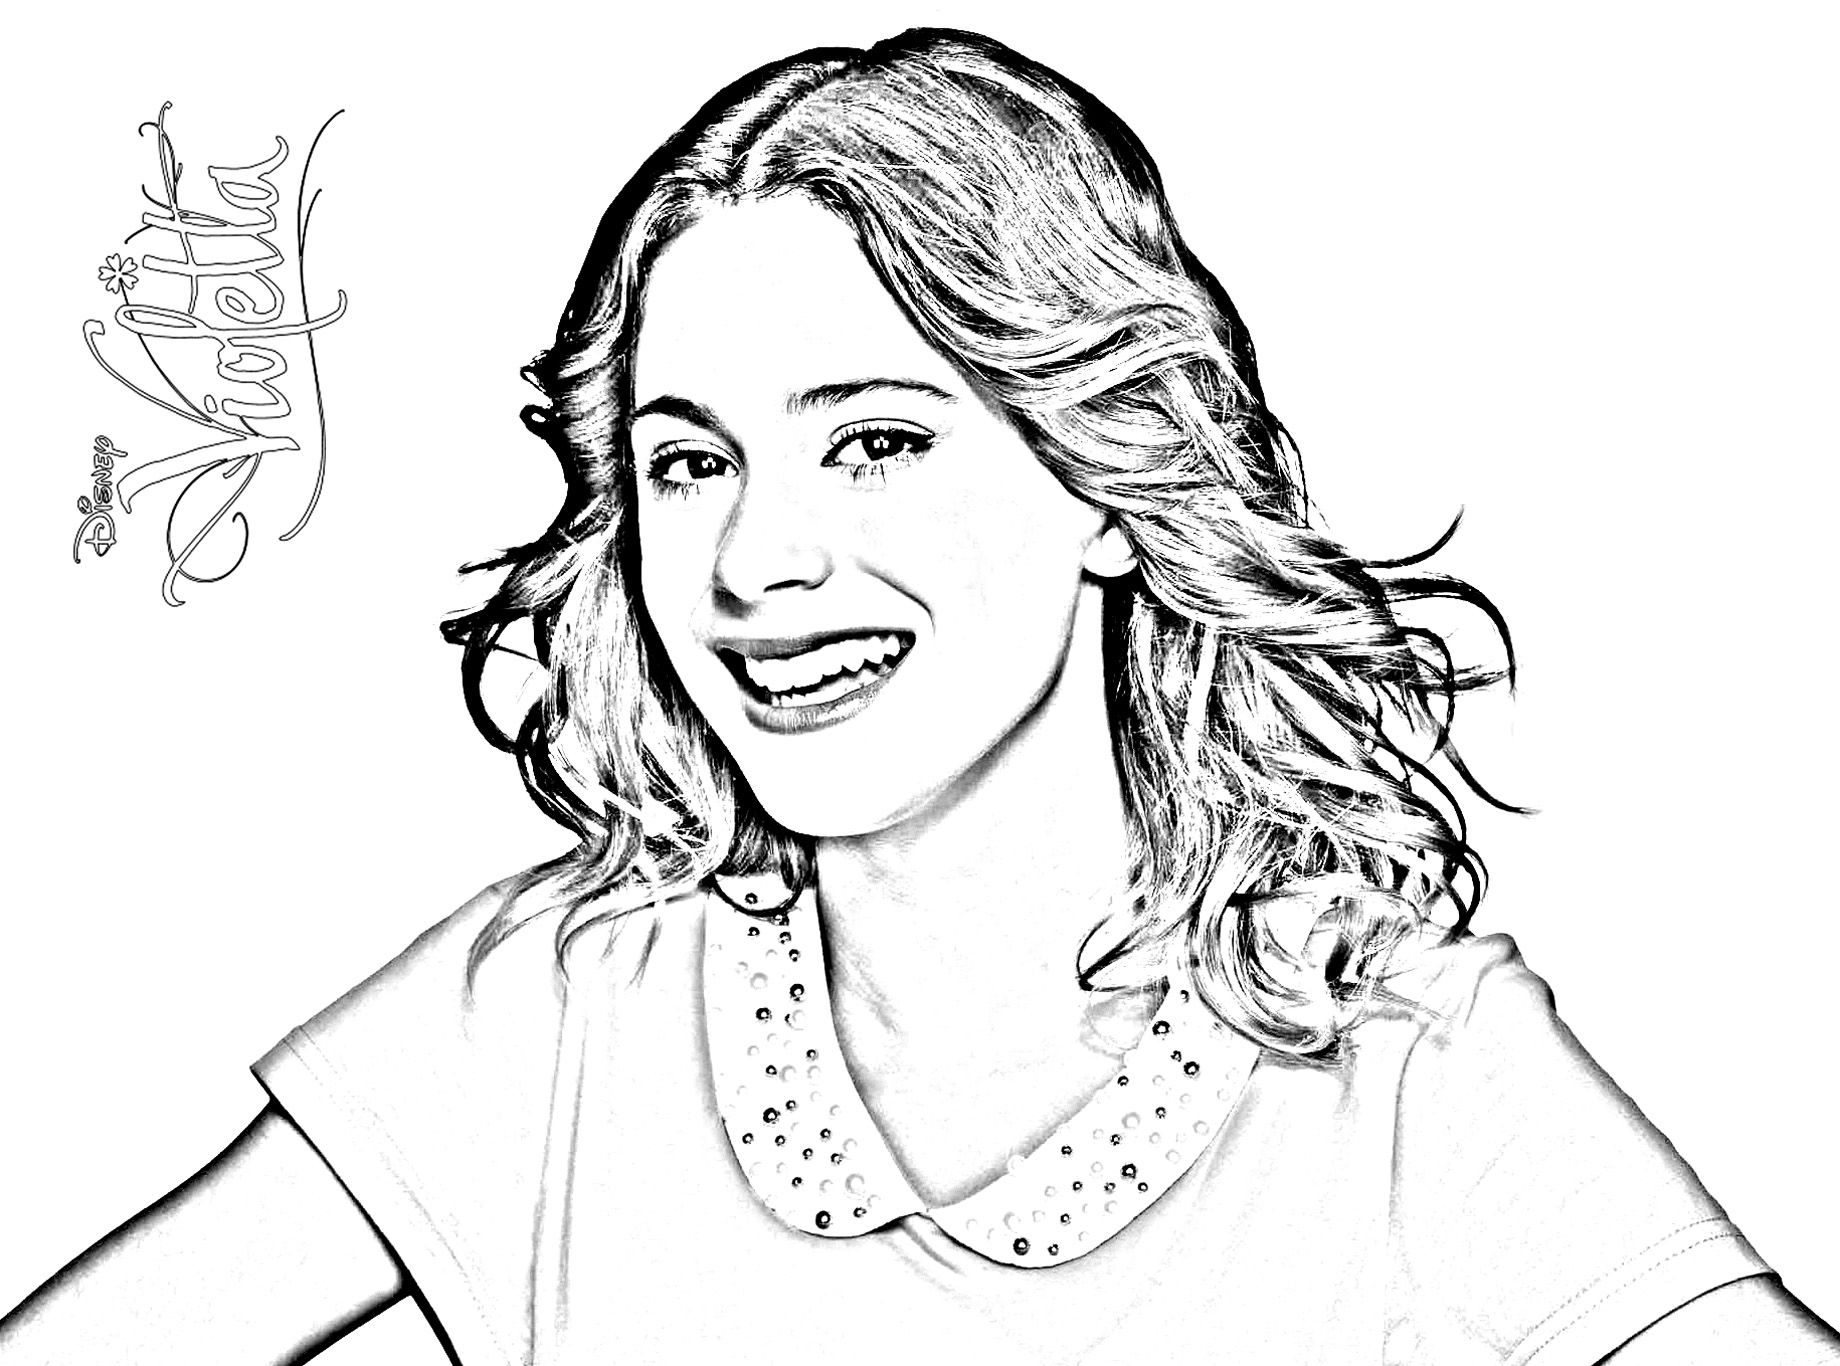 Coloring pages violetta - Violetta 2 Temporada Colouring Pages